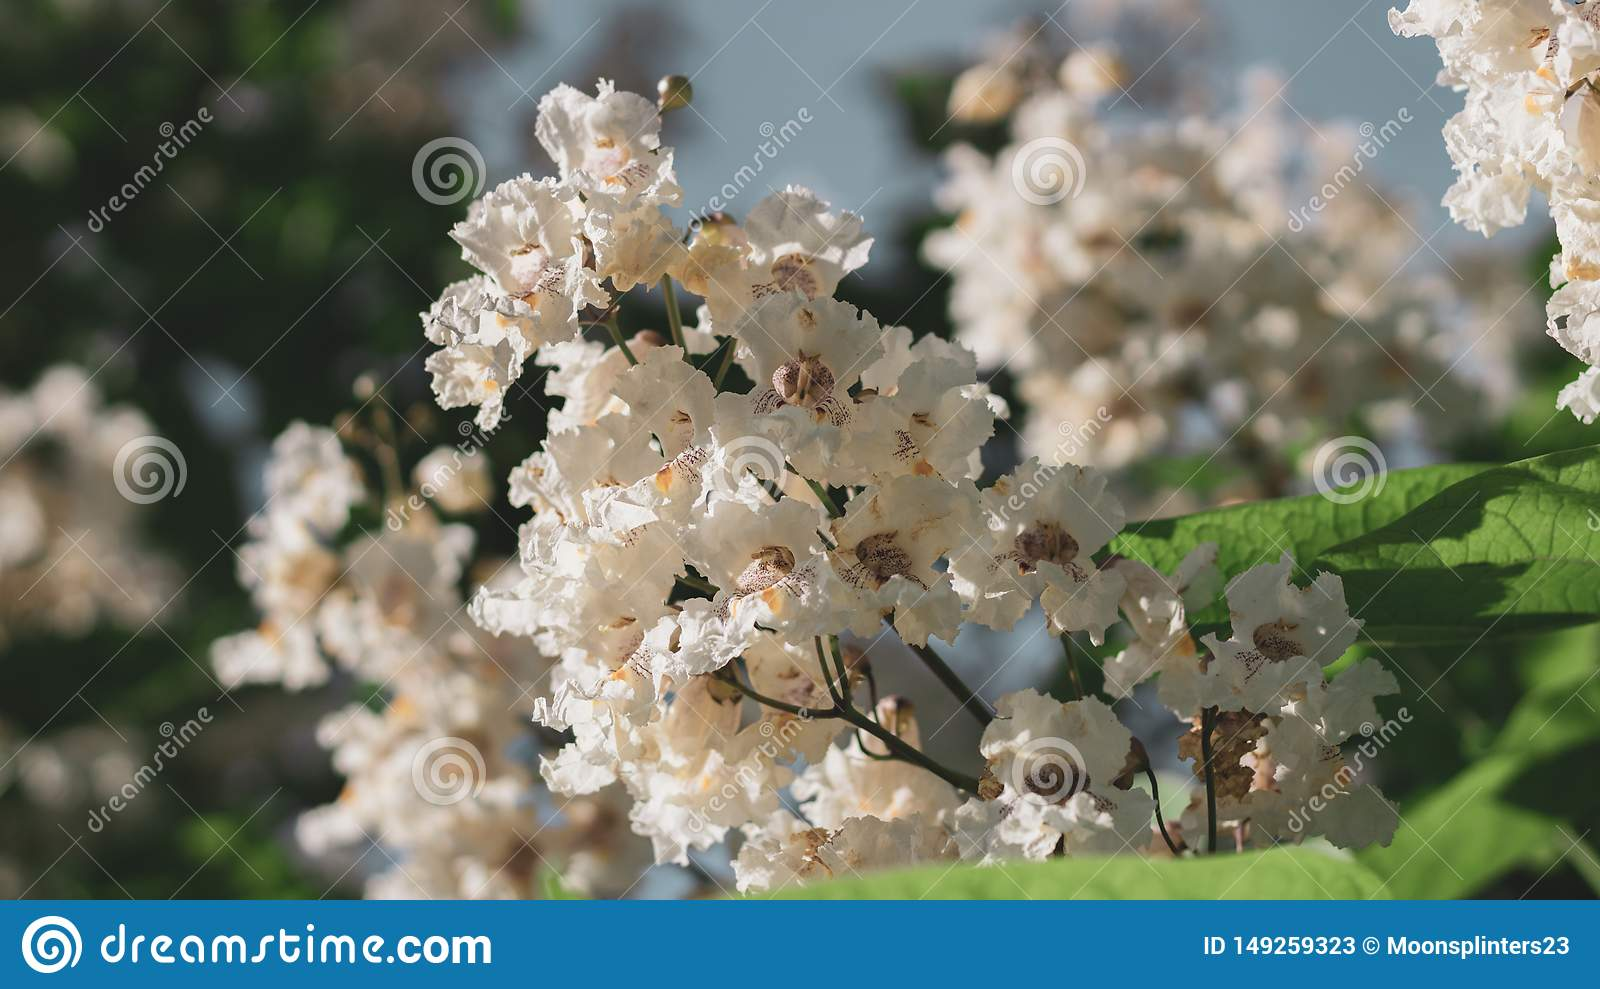 Big tree with white flowers. Flowers catalpa or catawba. East Asia and North America flowering plants